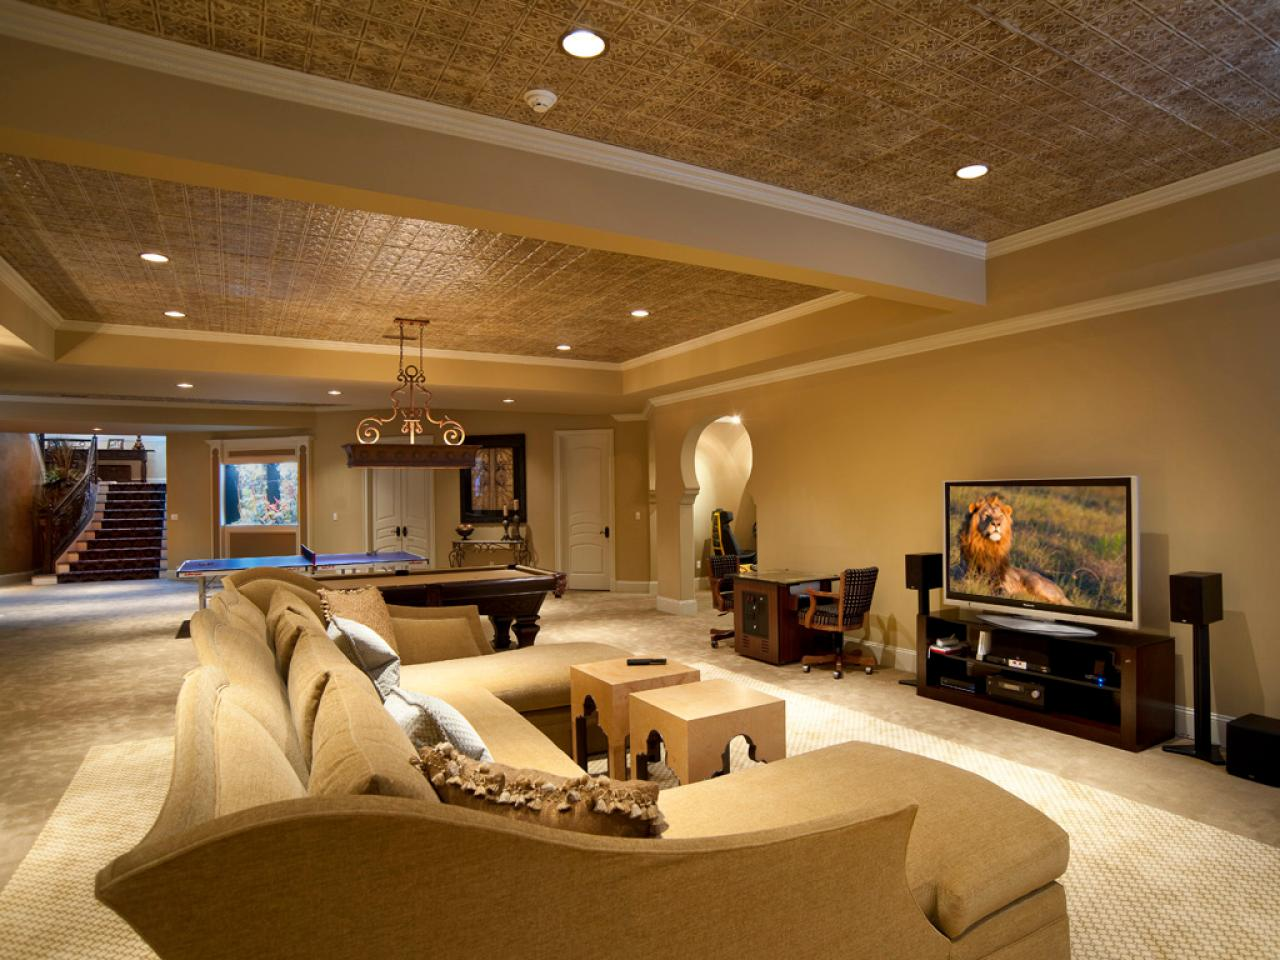 Home Basement Designs Interior Stunning Basement Remodel Splurge Vssave  Hgtv Inspiration